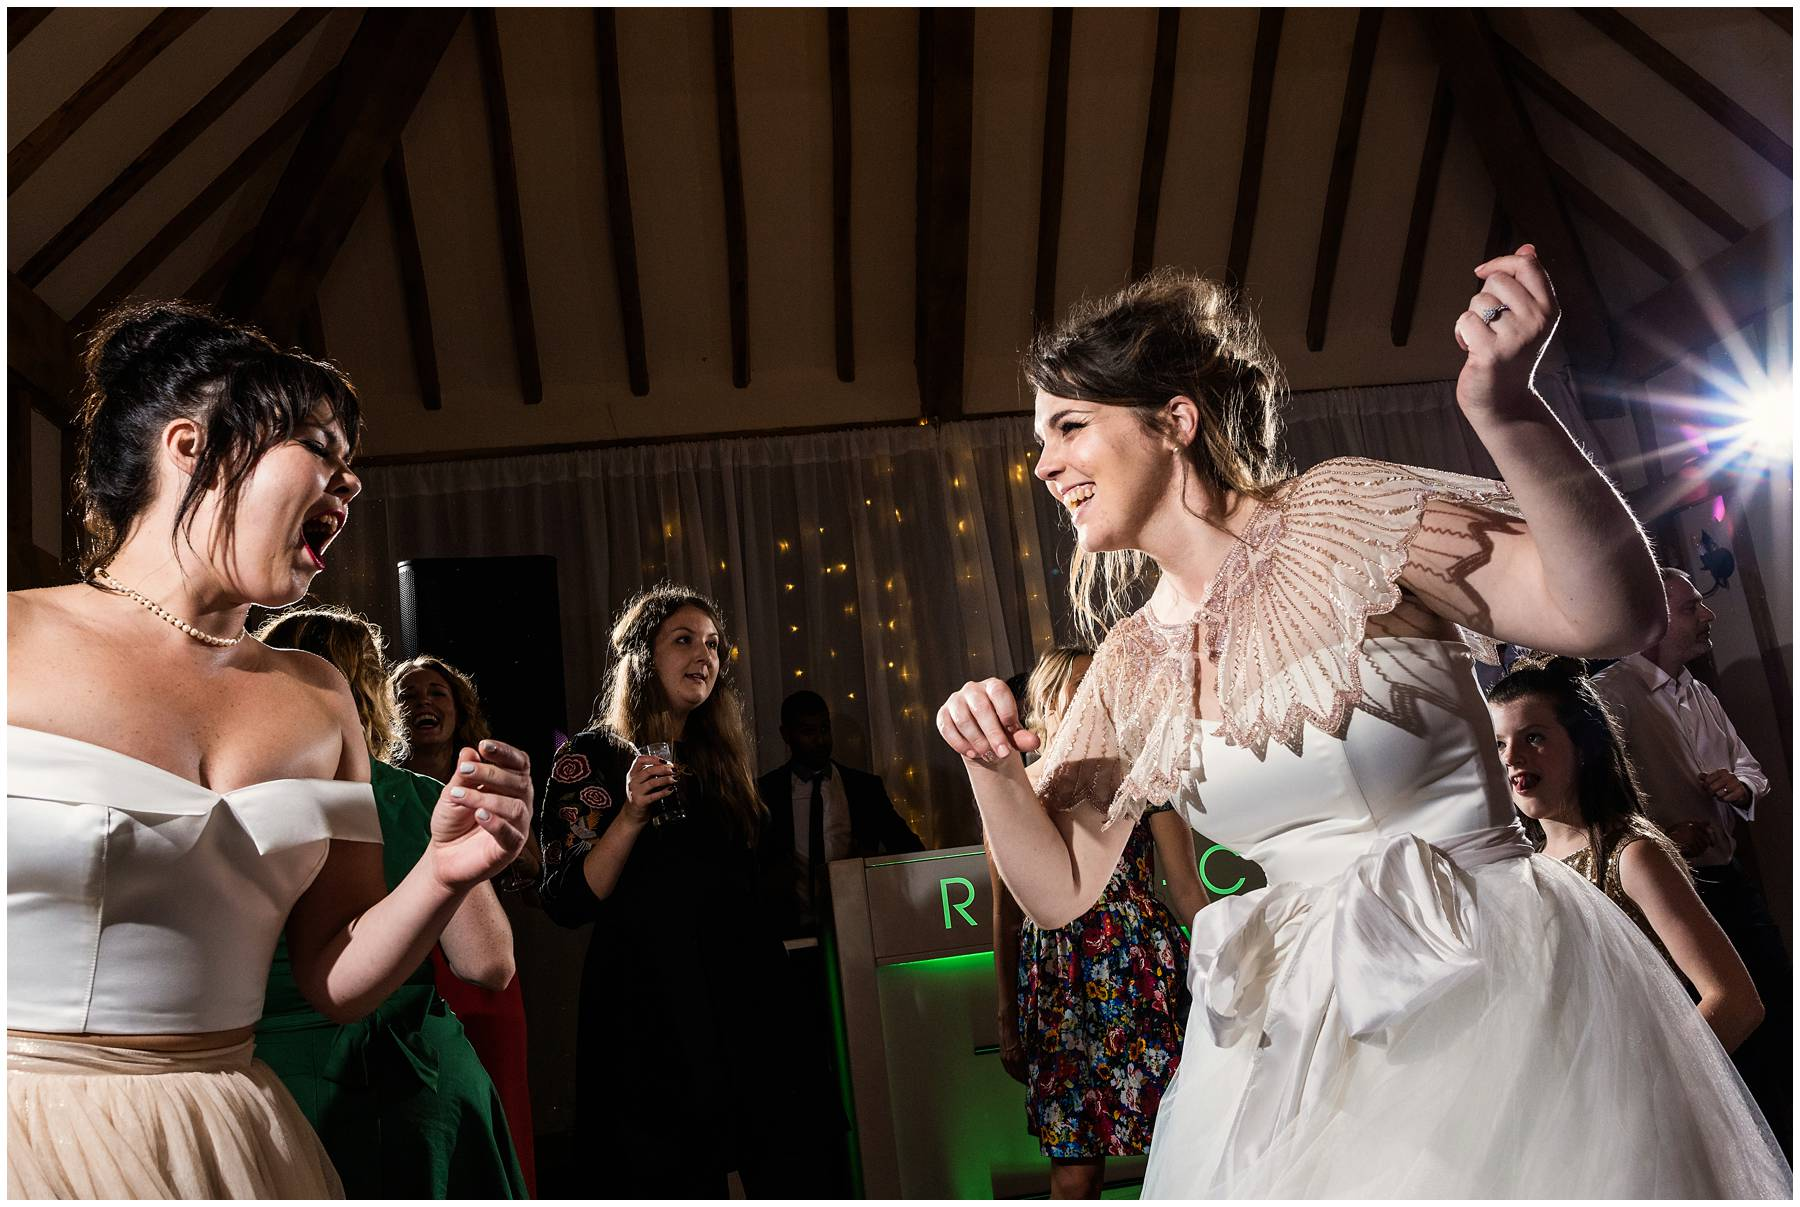 Reportage Wedding Photography at Vaulty Manor